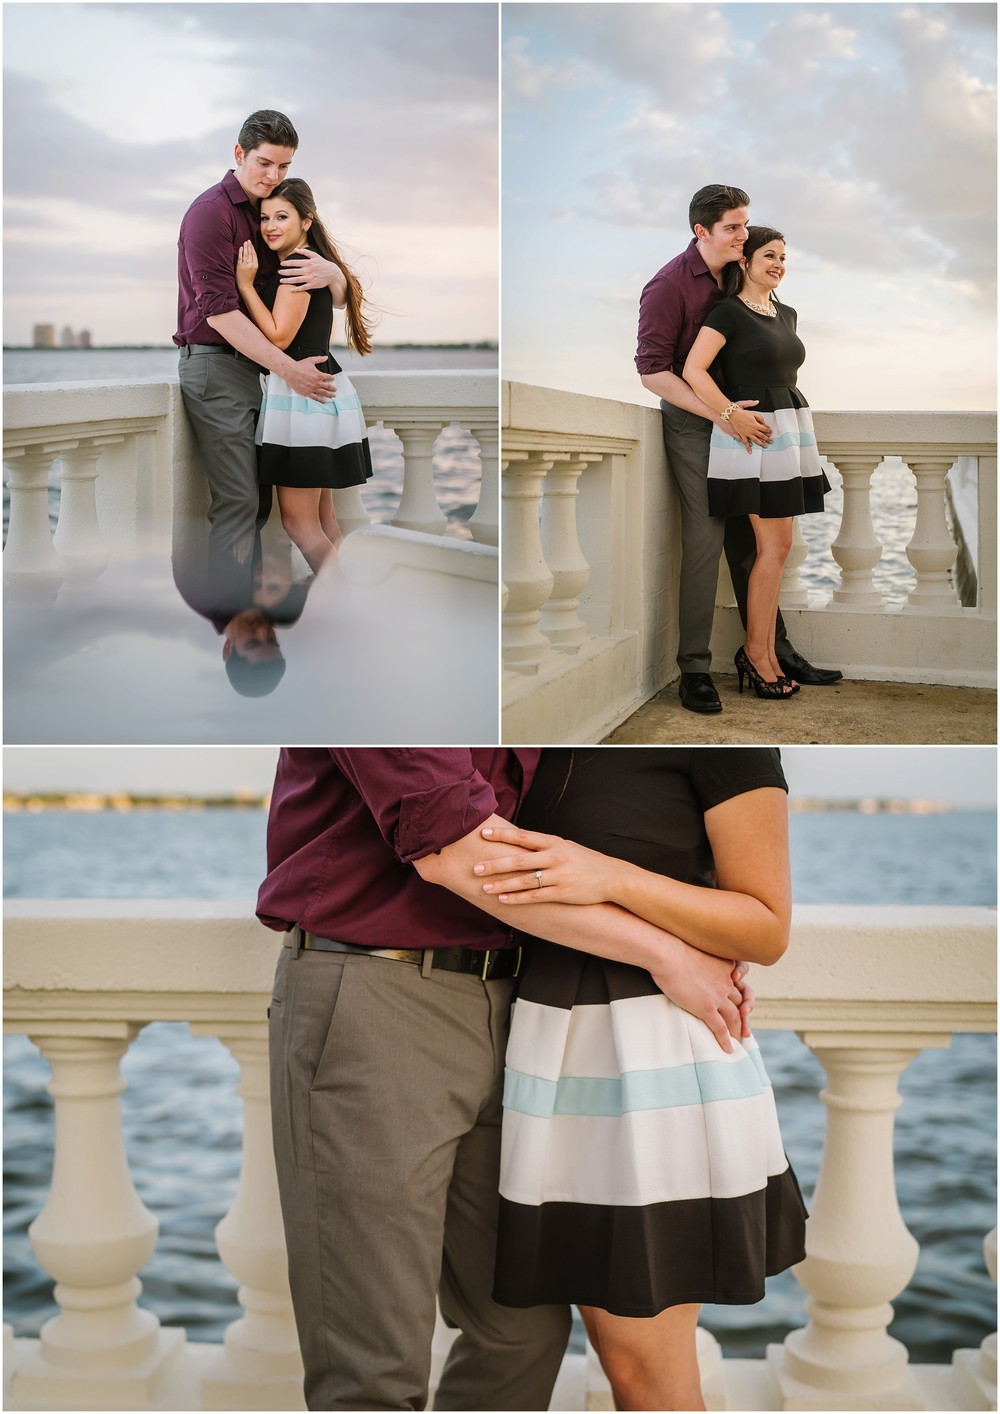 downtown-tampa-engagement-photography-ashlee-hamon_0009.jpg